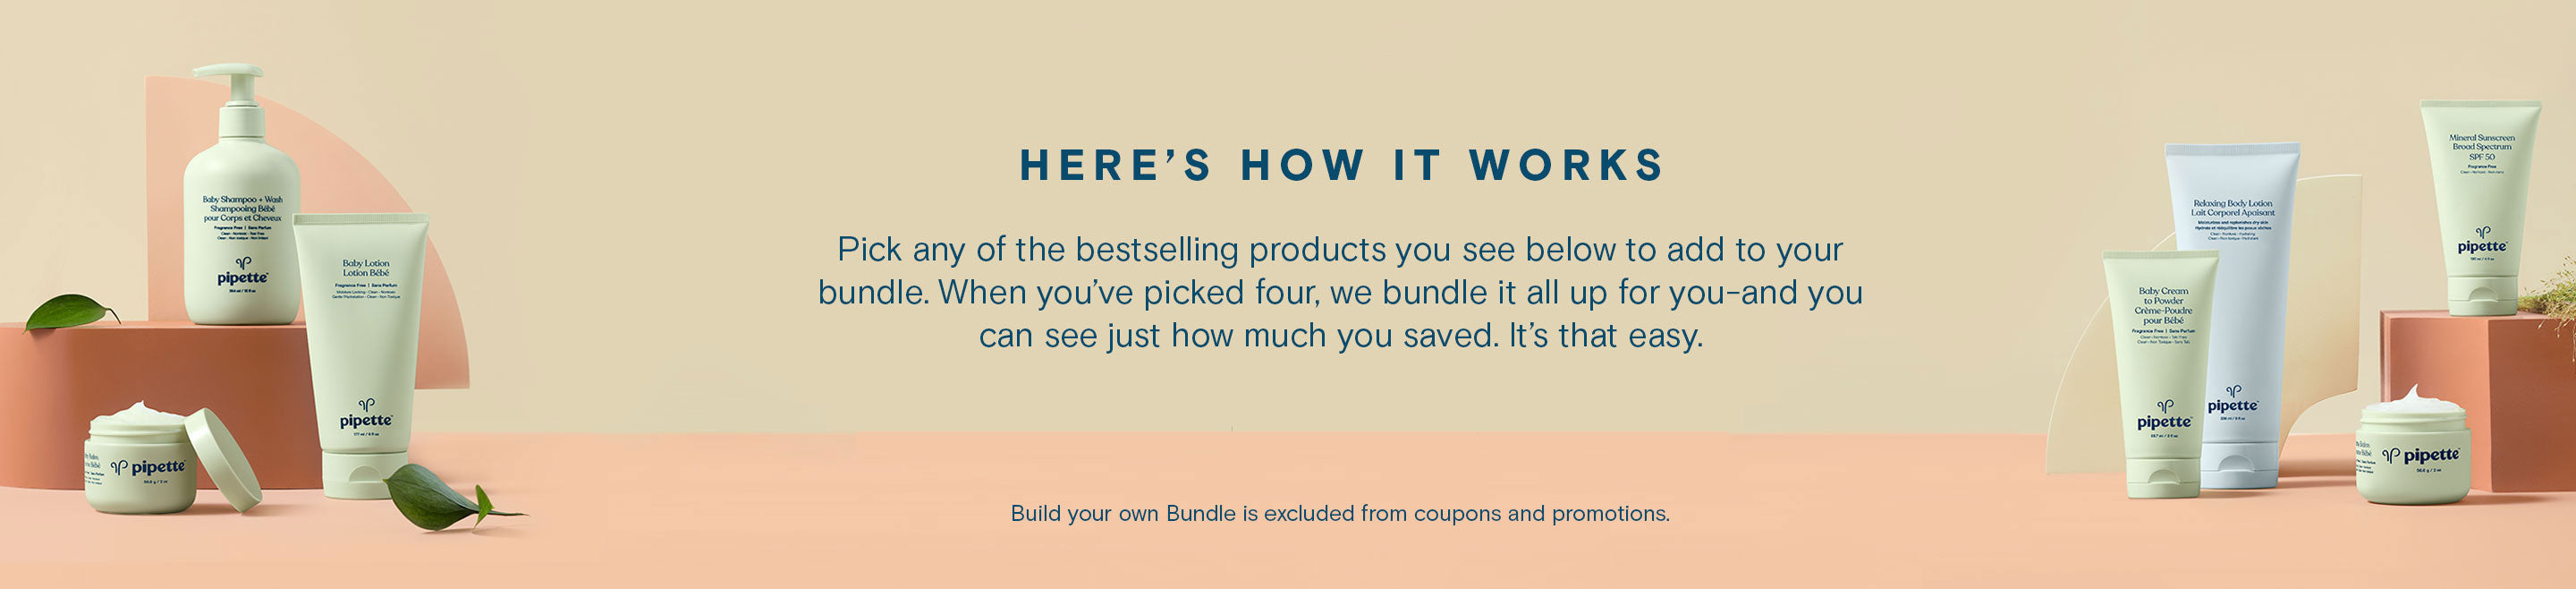 Instructions: Pick any of the bestselling products you see below to add to your bundle. When you've picked four, we bundle it all up for you—and you can see just how much you saved. It's that easy.